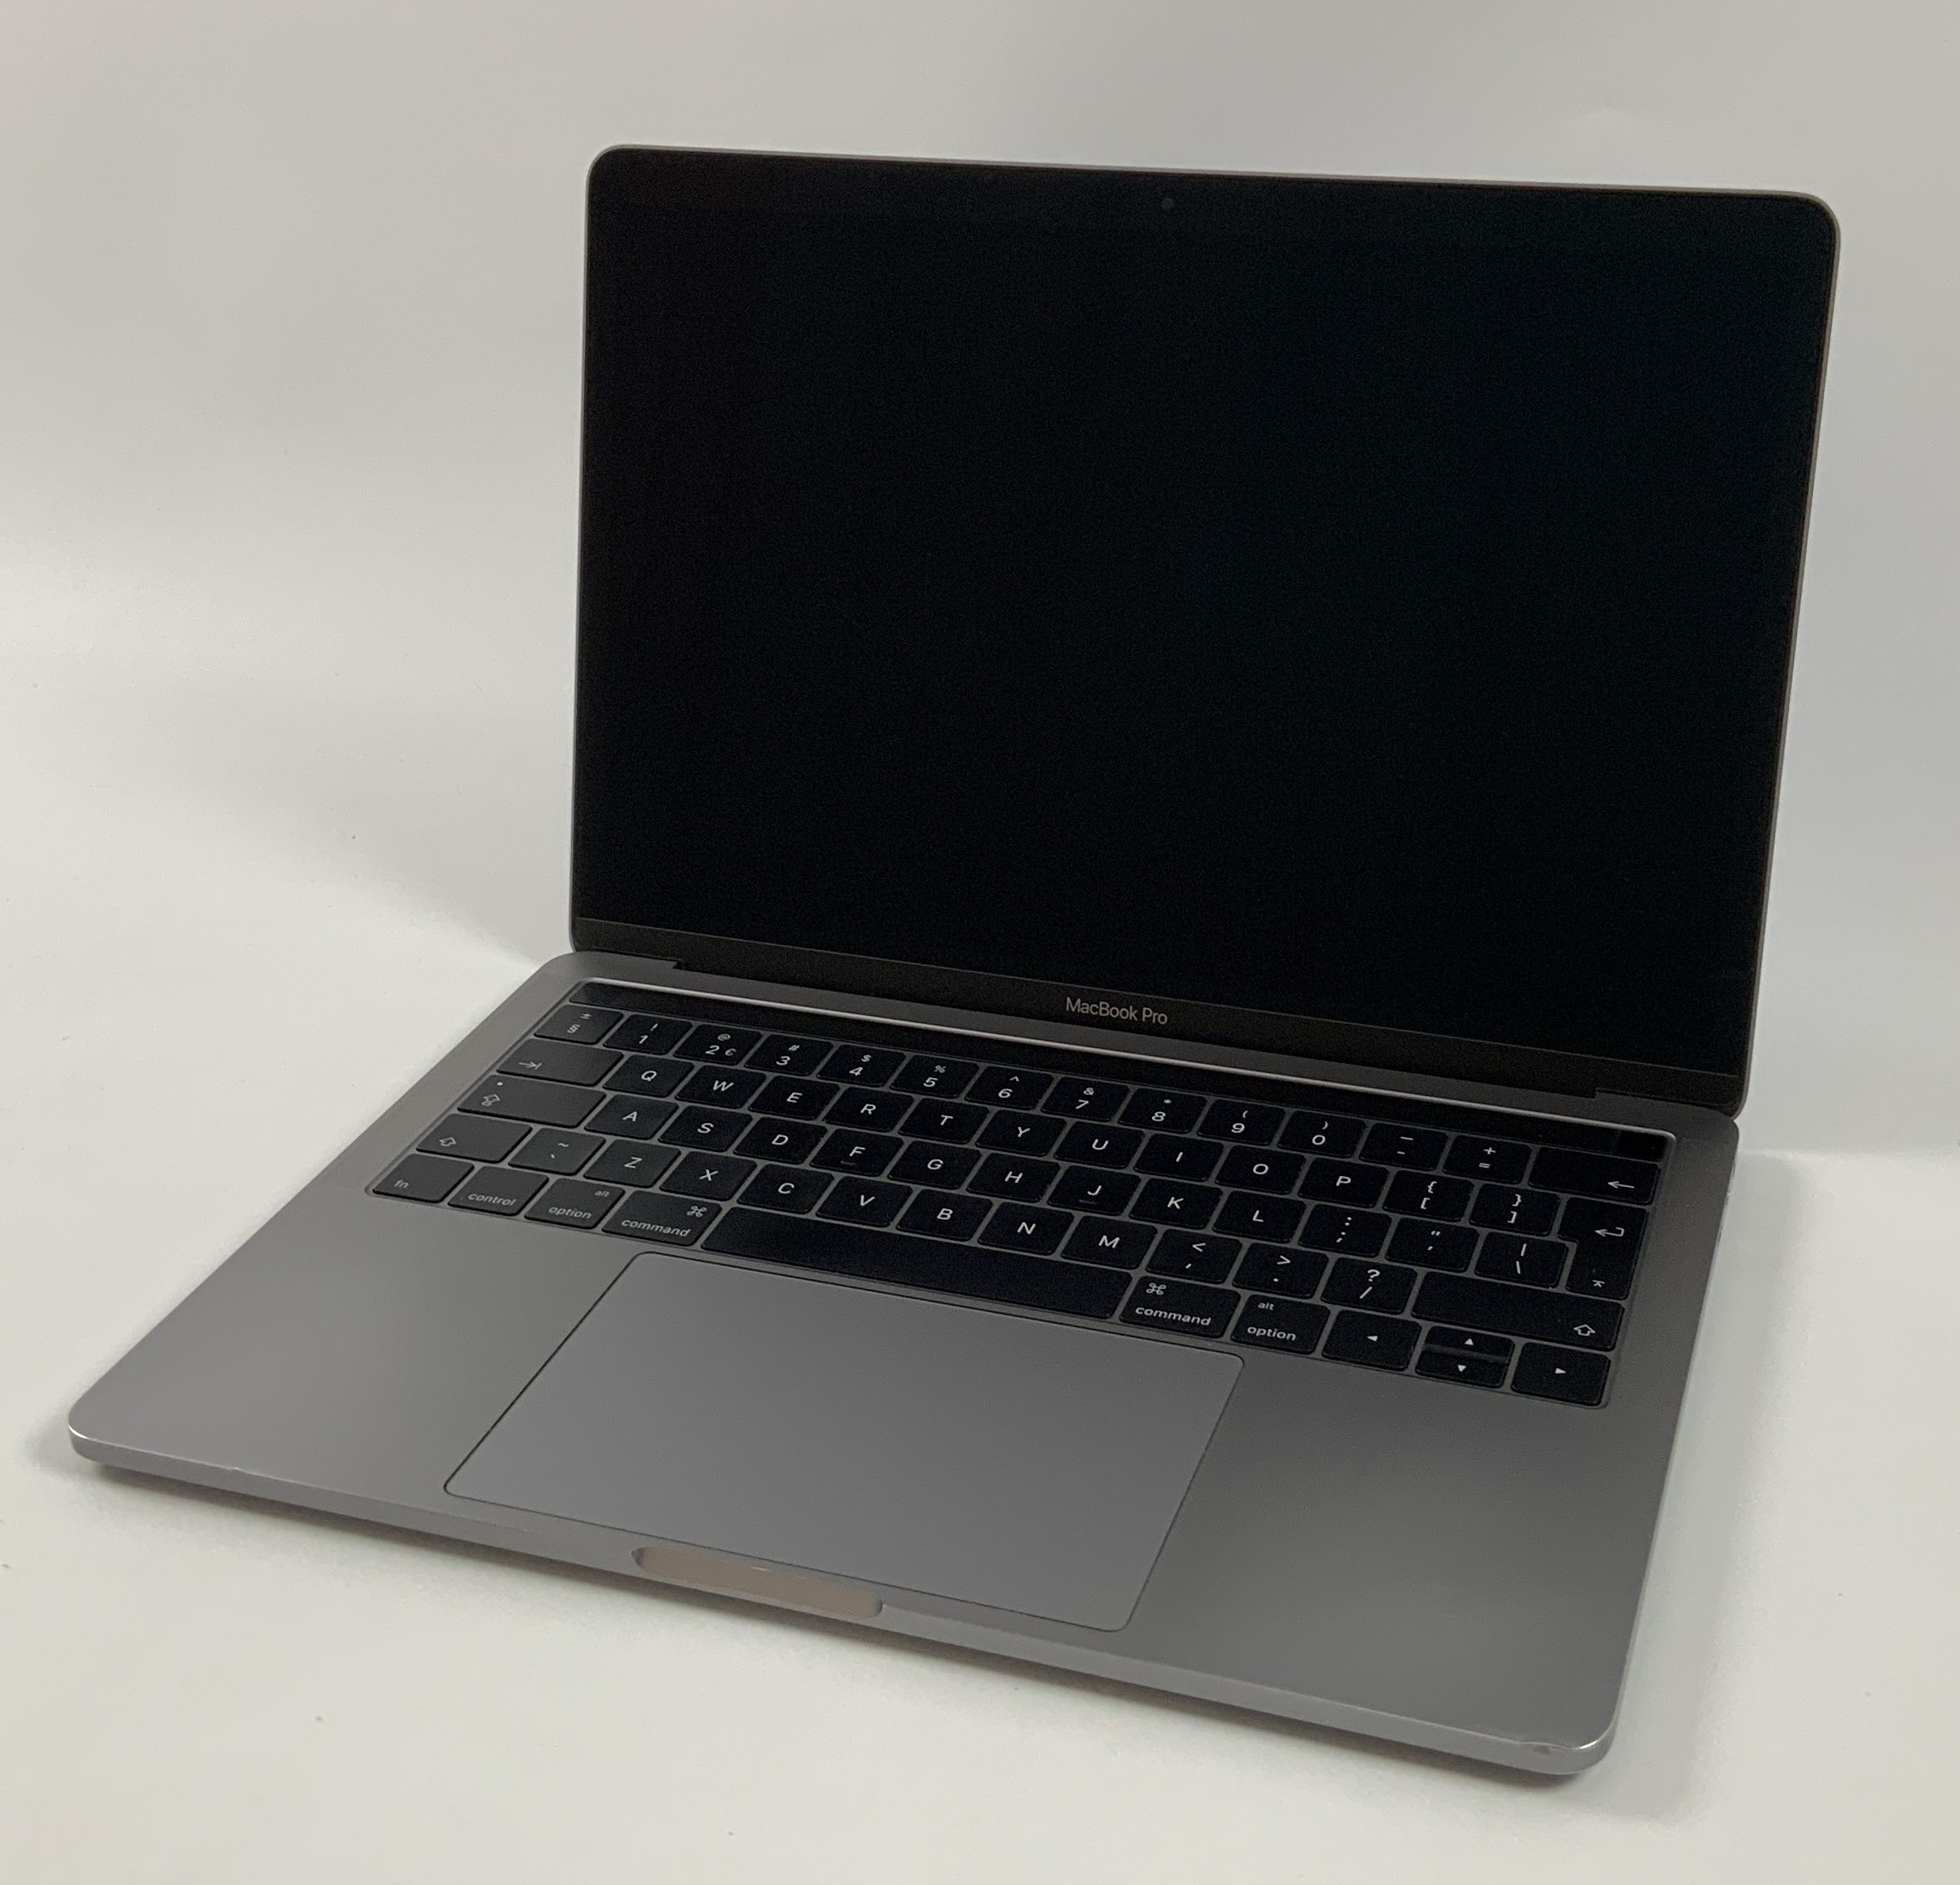 "MacBook Pro 13"" 4TBT Late 2016 (Intel Core i5 2.9 GHz 8 GB RAM 256 GB SSD), Space Gray, Intel Core i5 2.9 GHz, 8 GB RAM, 256 GB SSD, Bild 1"